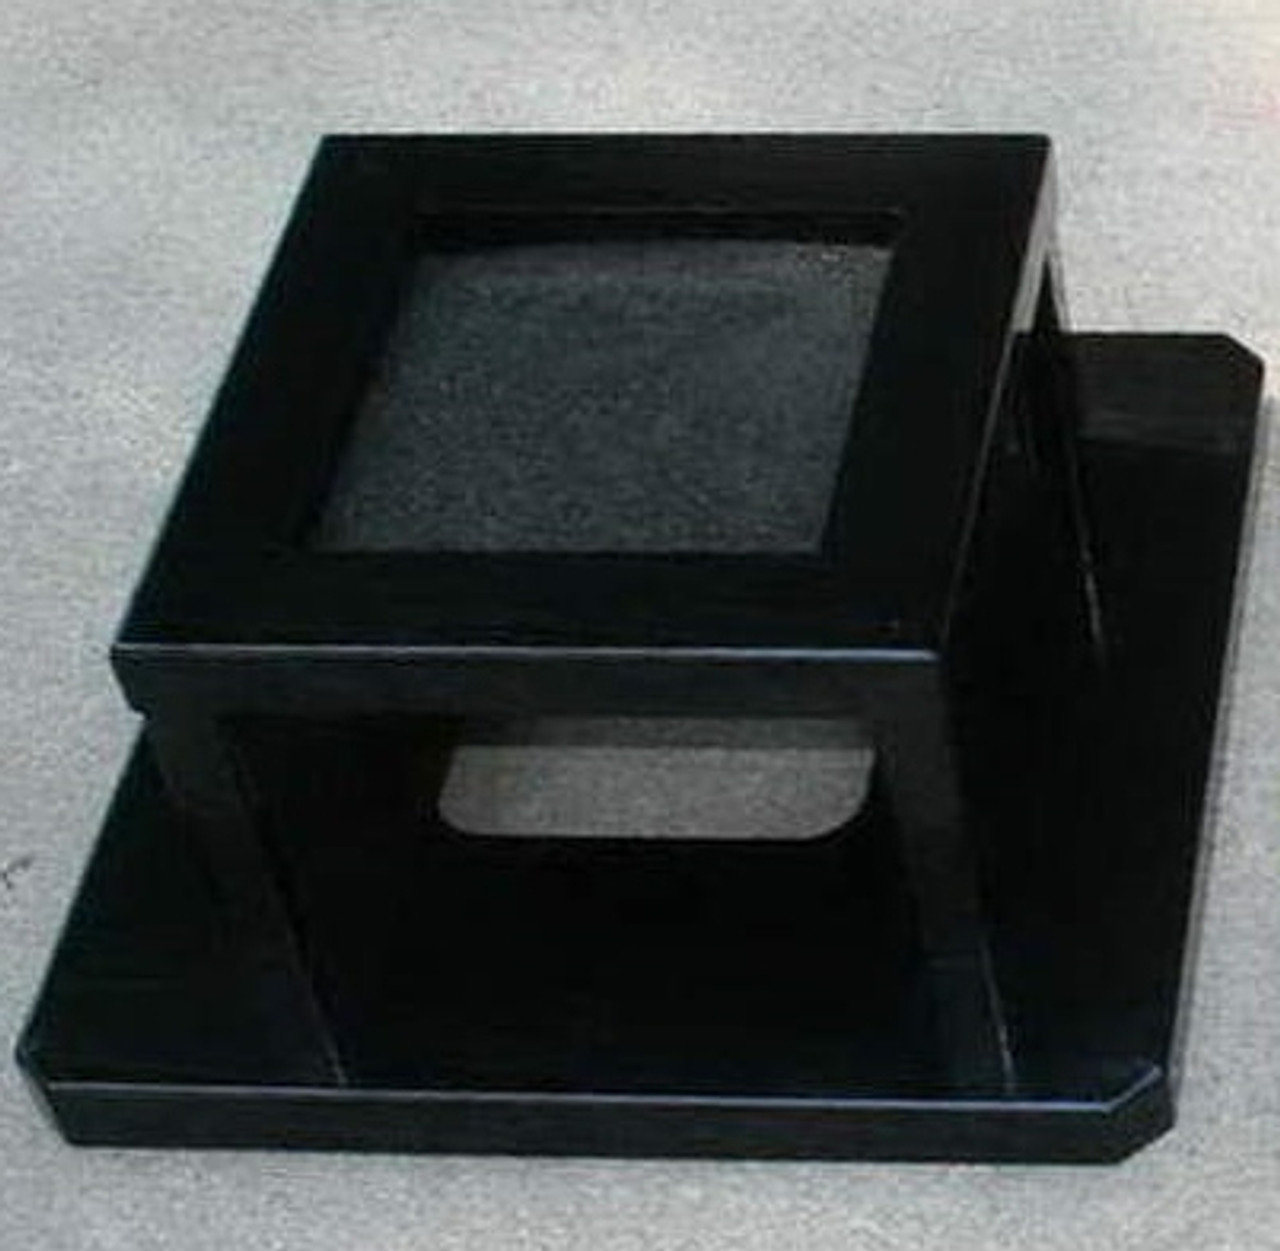 Ashtray Top FOR USE WITH S8050